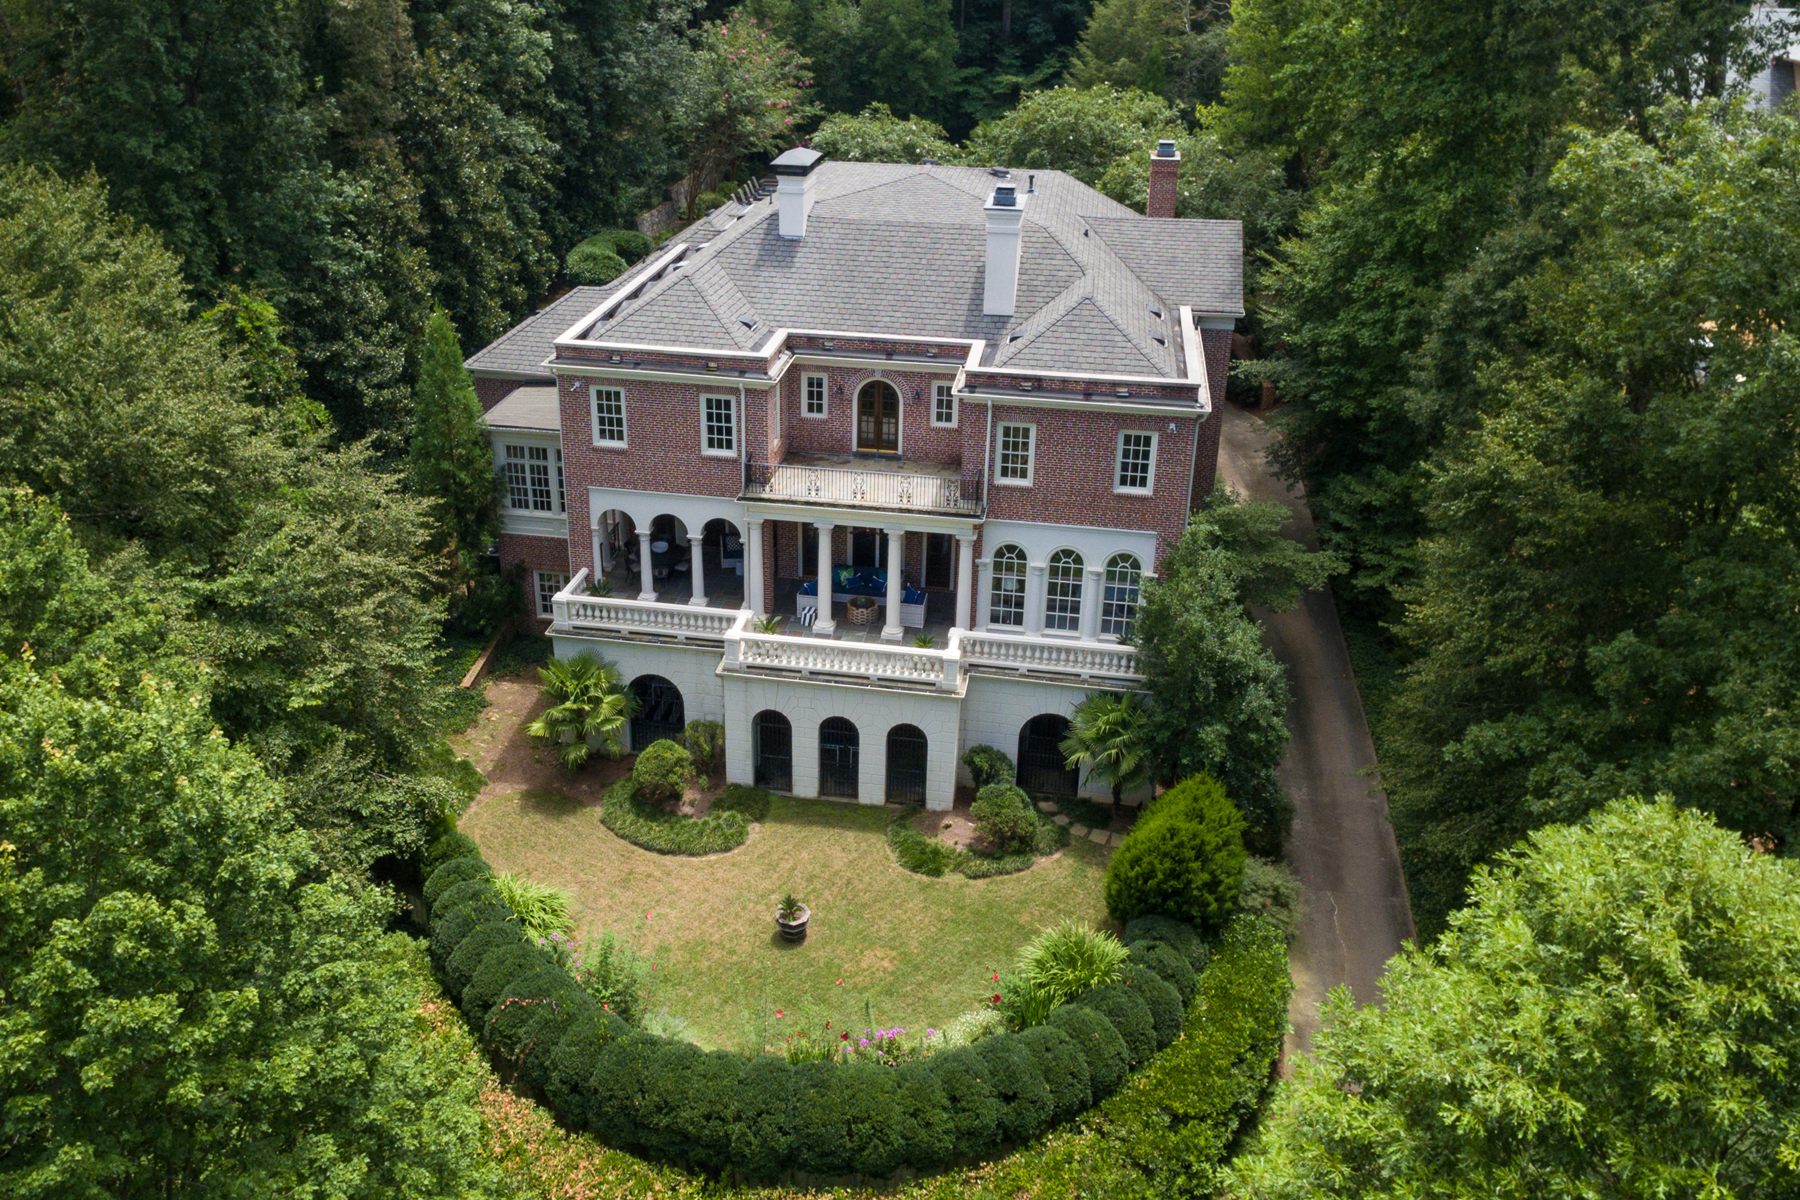 Частный односемейный дом для того Продажа на Beautiful Renovation In Buckhead's Prestigious Tuxedo Park 3669 Tuxedo Road NW, Tuxedo Park, Atlanta, Джорджия, 30305 Соединенные Штаты